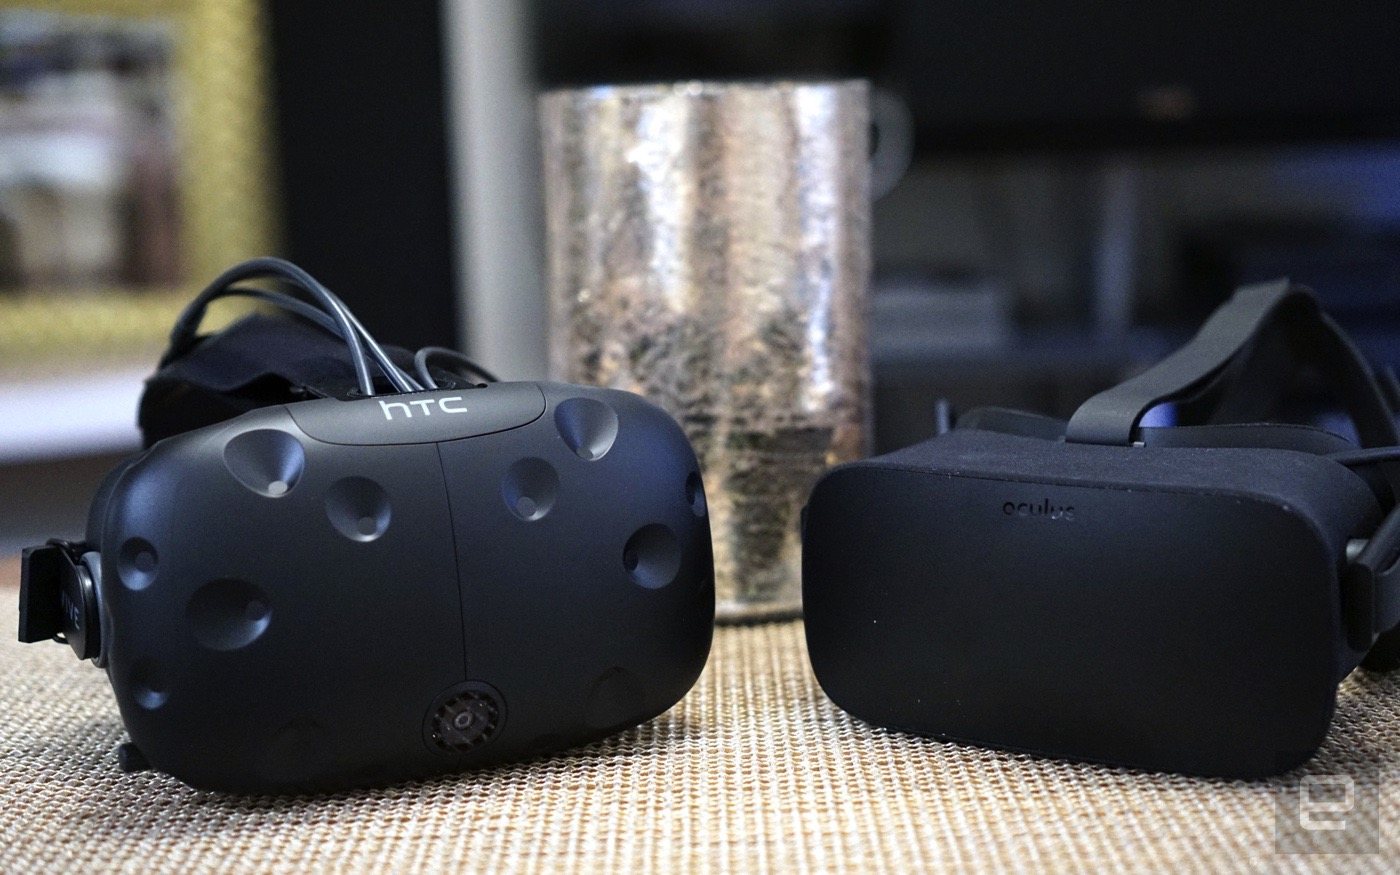 Oculus Rift vs. HTC Vive: What we've learned after the